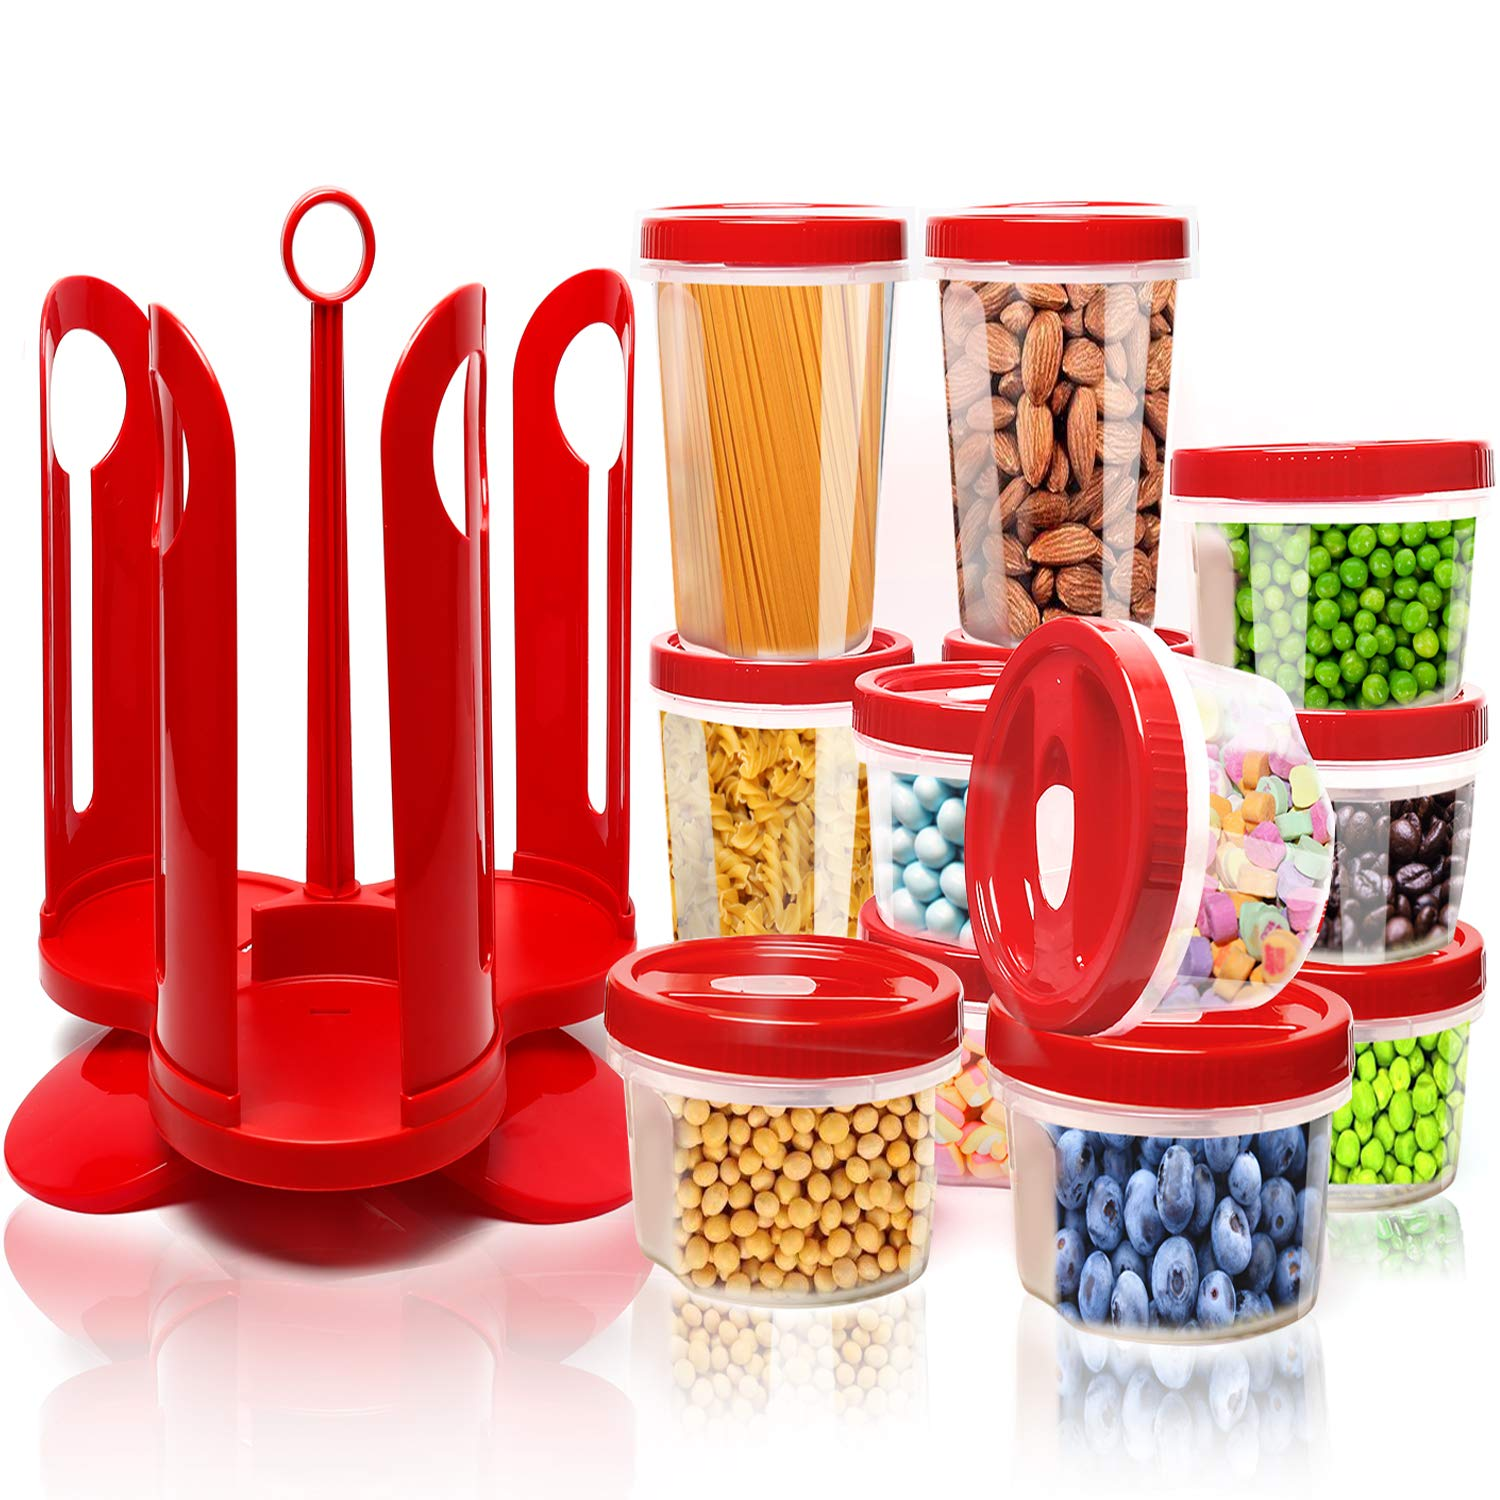 Fun Life 25-Piece Food Storage Container Set with Rotating Rack, Durable Plastic Canister Jar with Red Lids, Perfect for Flour, Sugar, Cereals, BPA Free, Leakproof, Microwave/Freezer/Dishwasher Safe Food Storage Container9